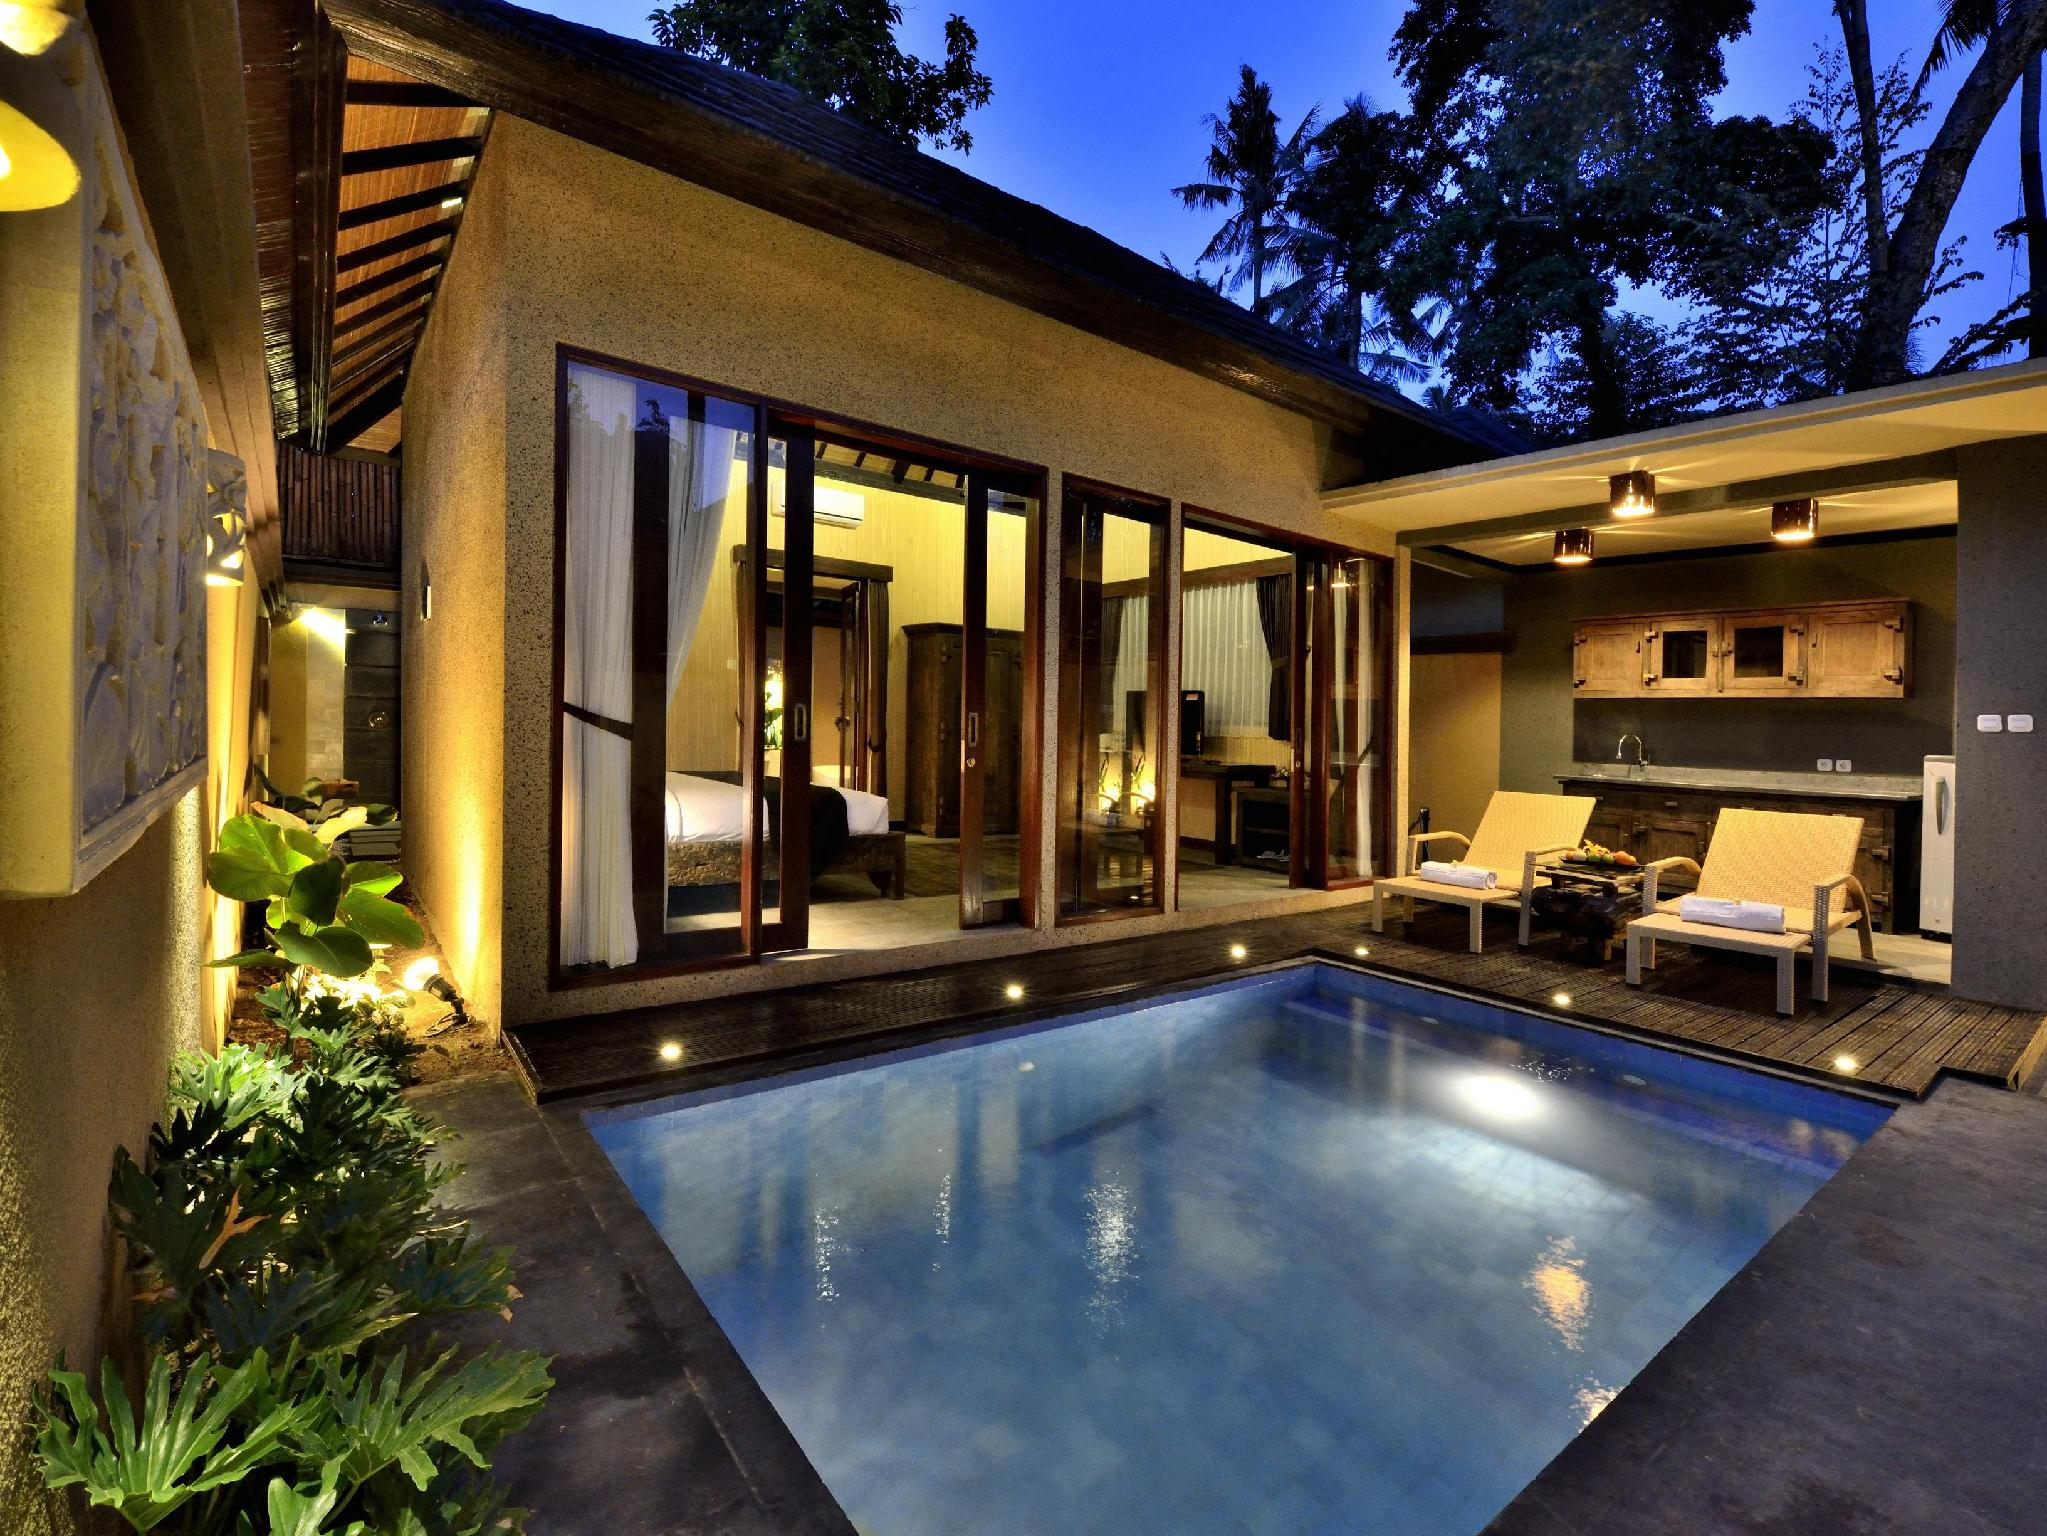 Honeymoon Package 1 Bedroom Pool Villa 1 time candle light dinner, 1 time 1 hour Balinese Massage, H